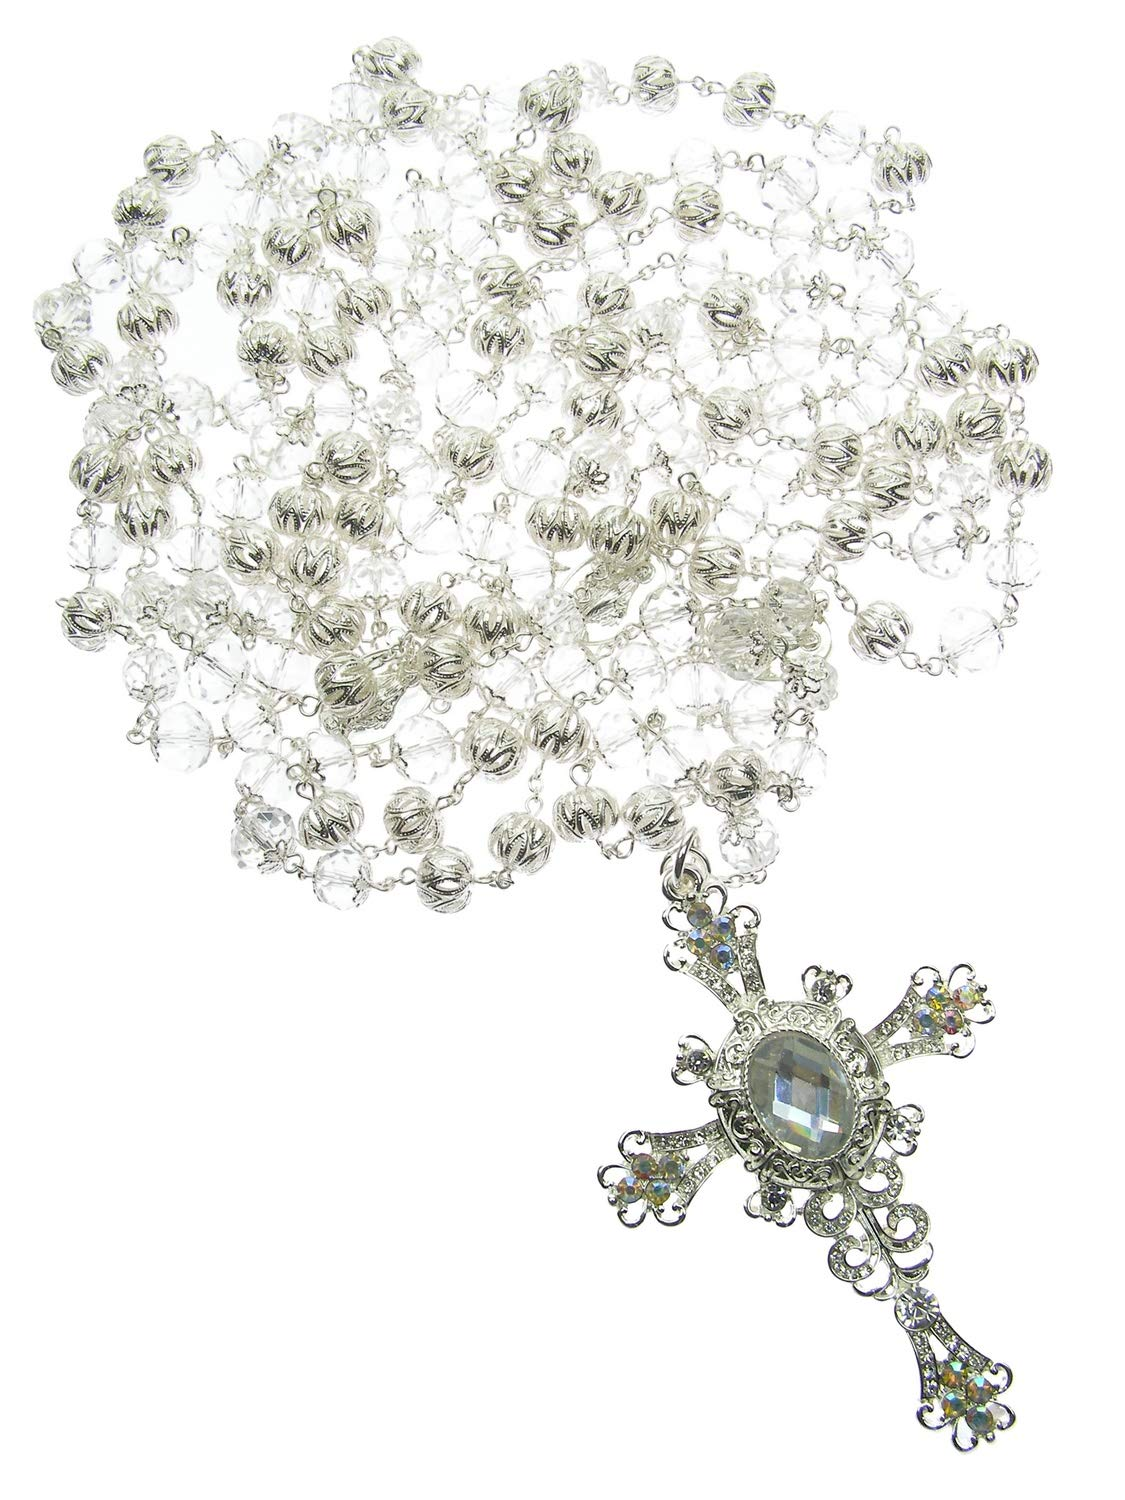 DivaDesigns Hispanic Traditional Wedding Filigree Crystal Beads Cross Lasso 109 - Silver Tone/AB